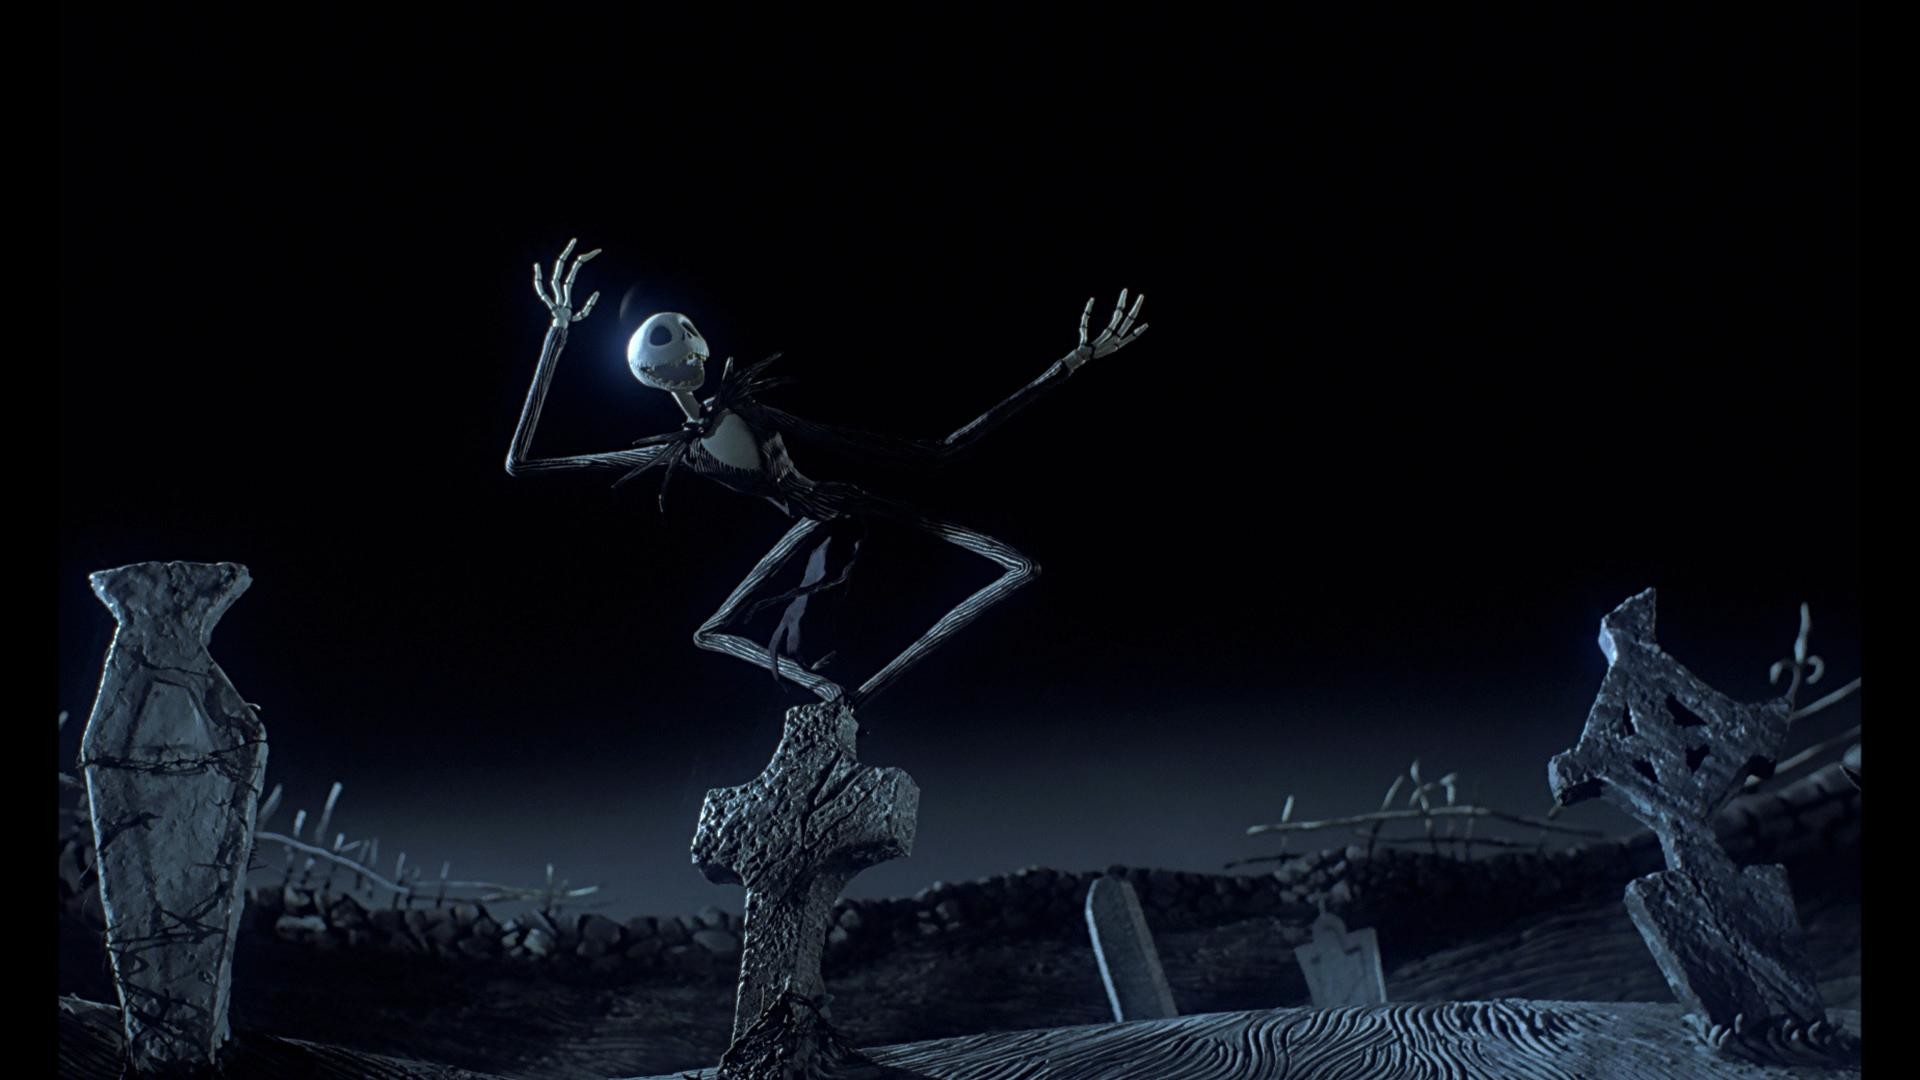 The Nightmare Before Christmas background